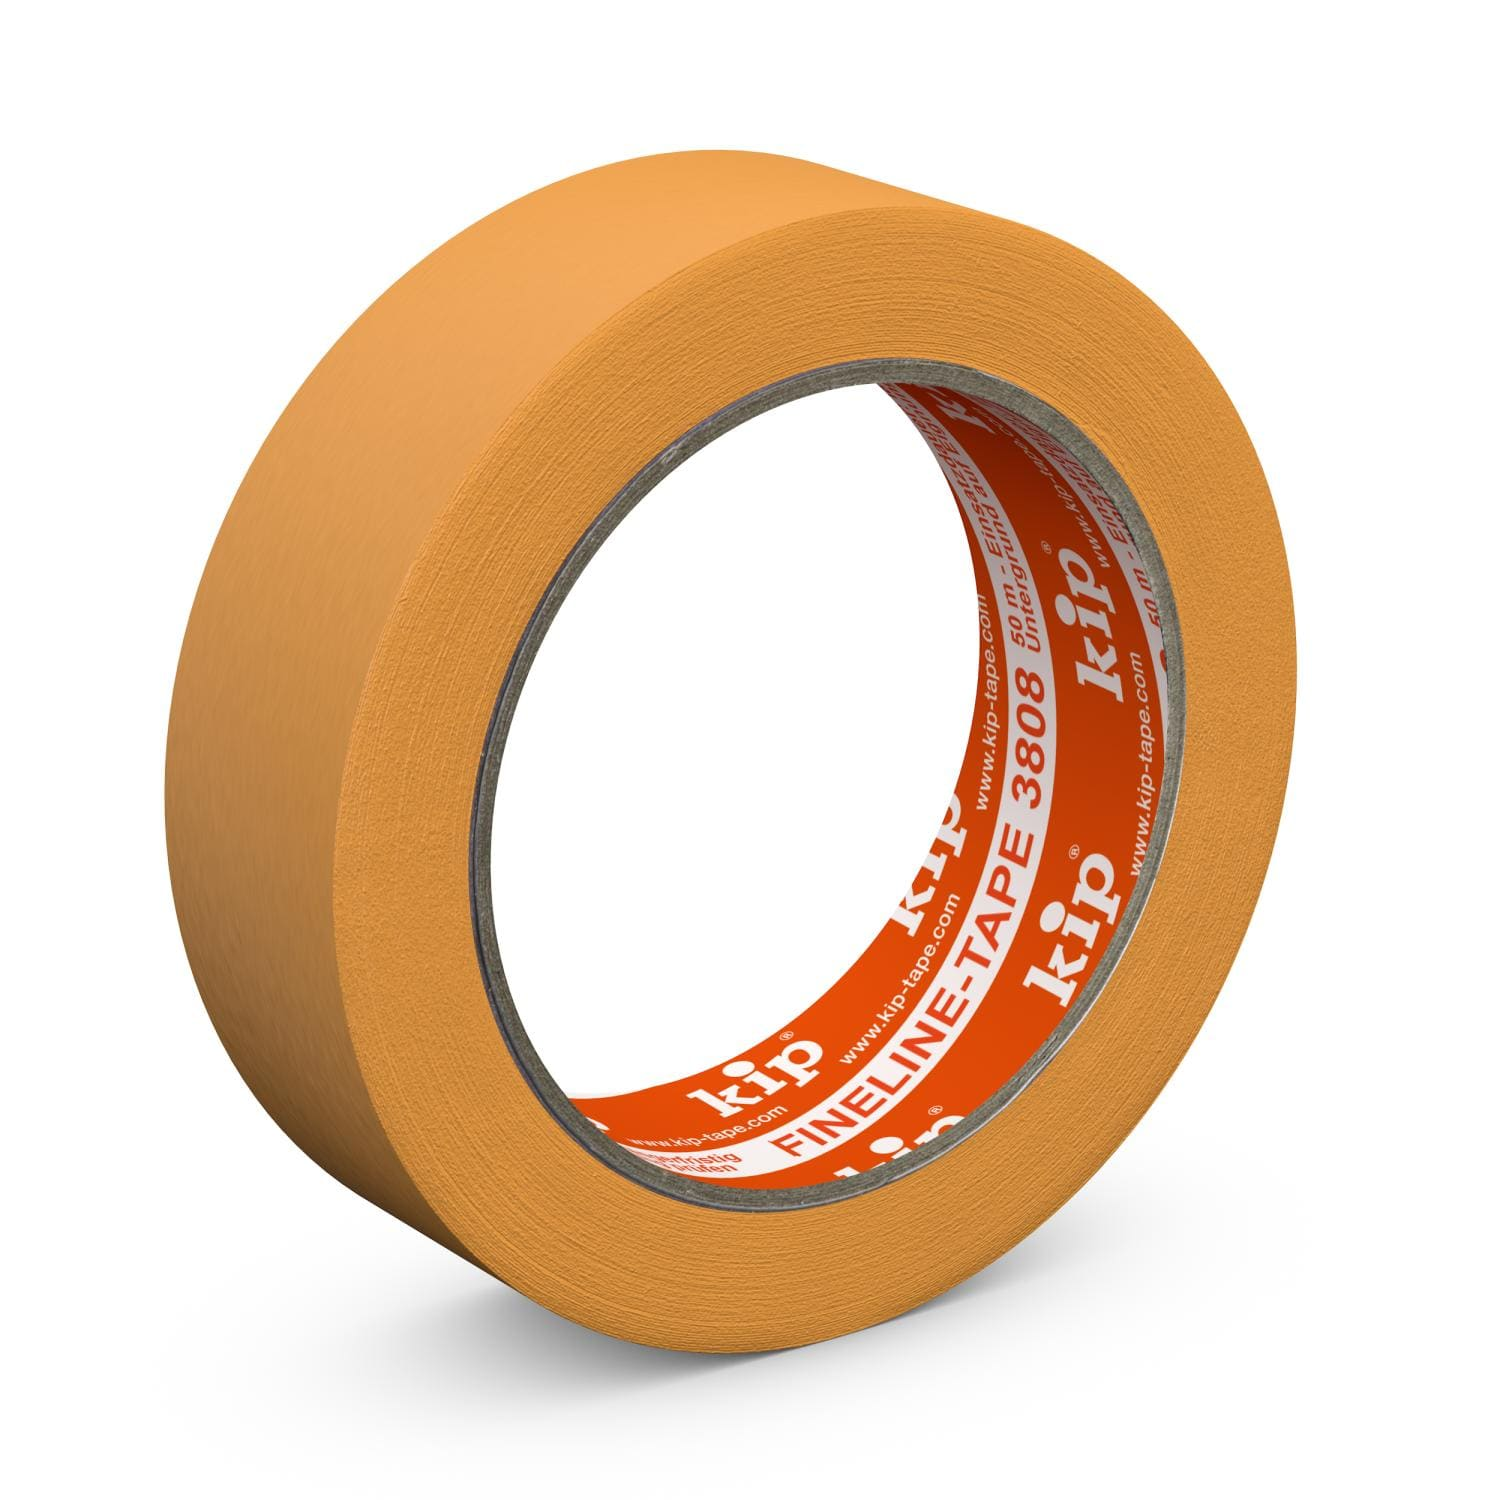 Kip-3808-Washi-Tape (Goldband) — Produktbild